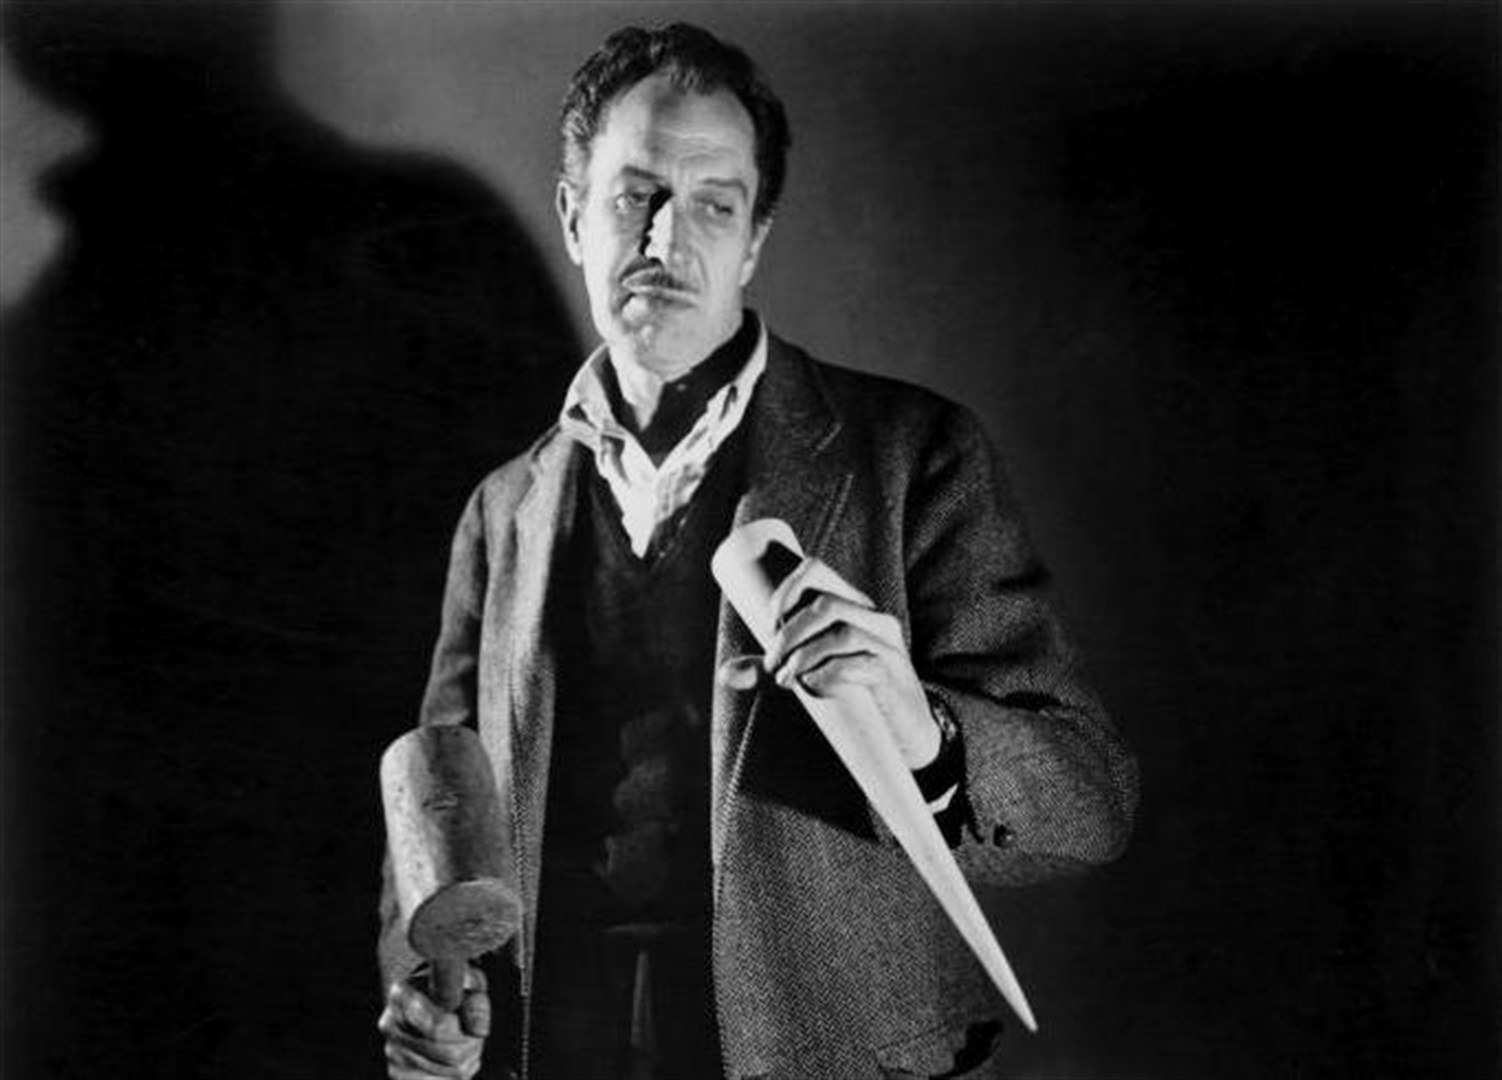 Robert Neville (Vincent Price) stakes vampires in The Last Man on Earth (1964)